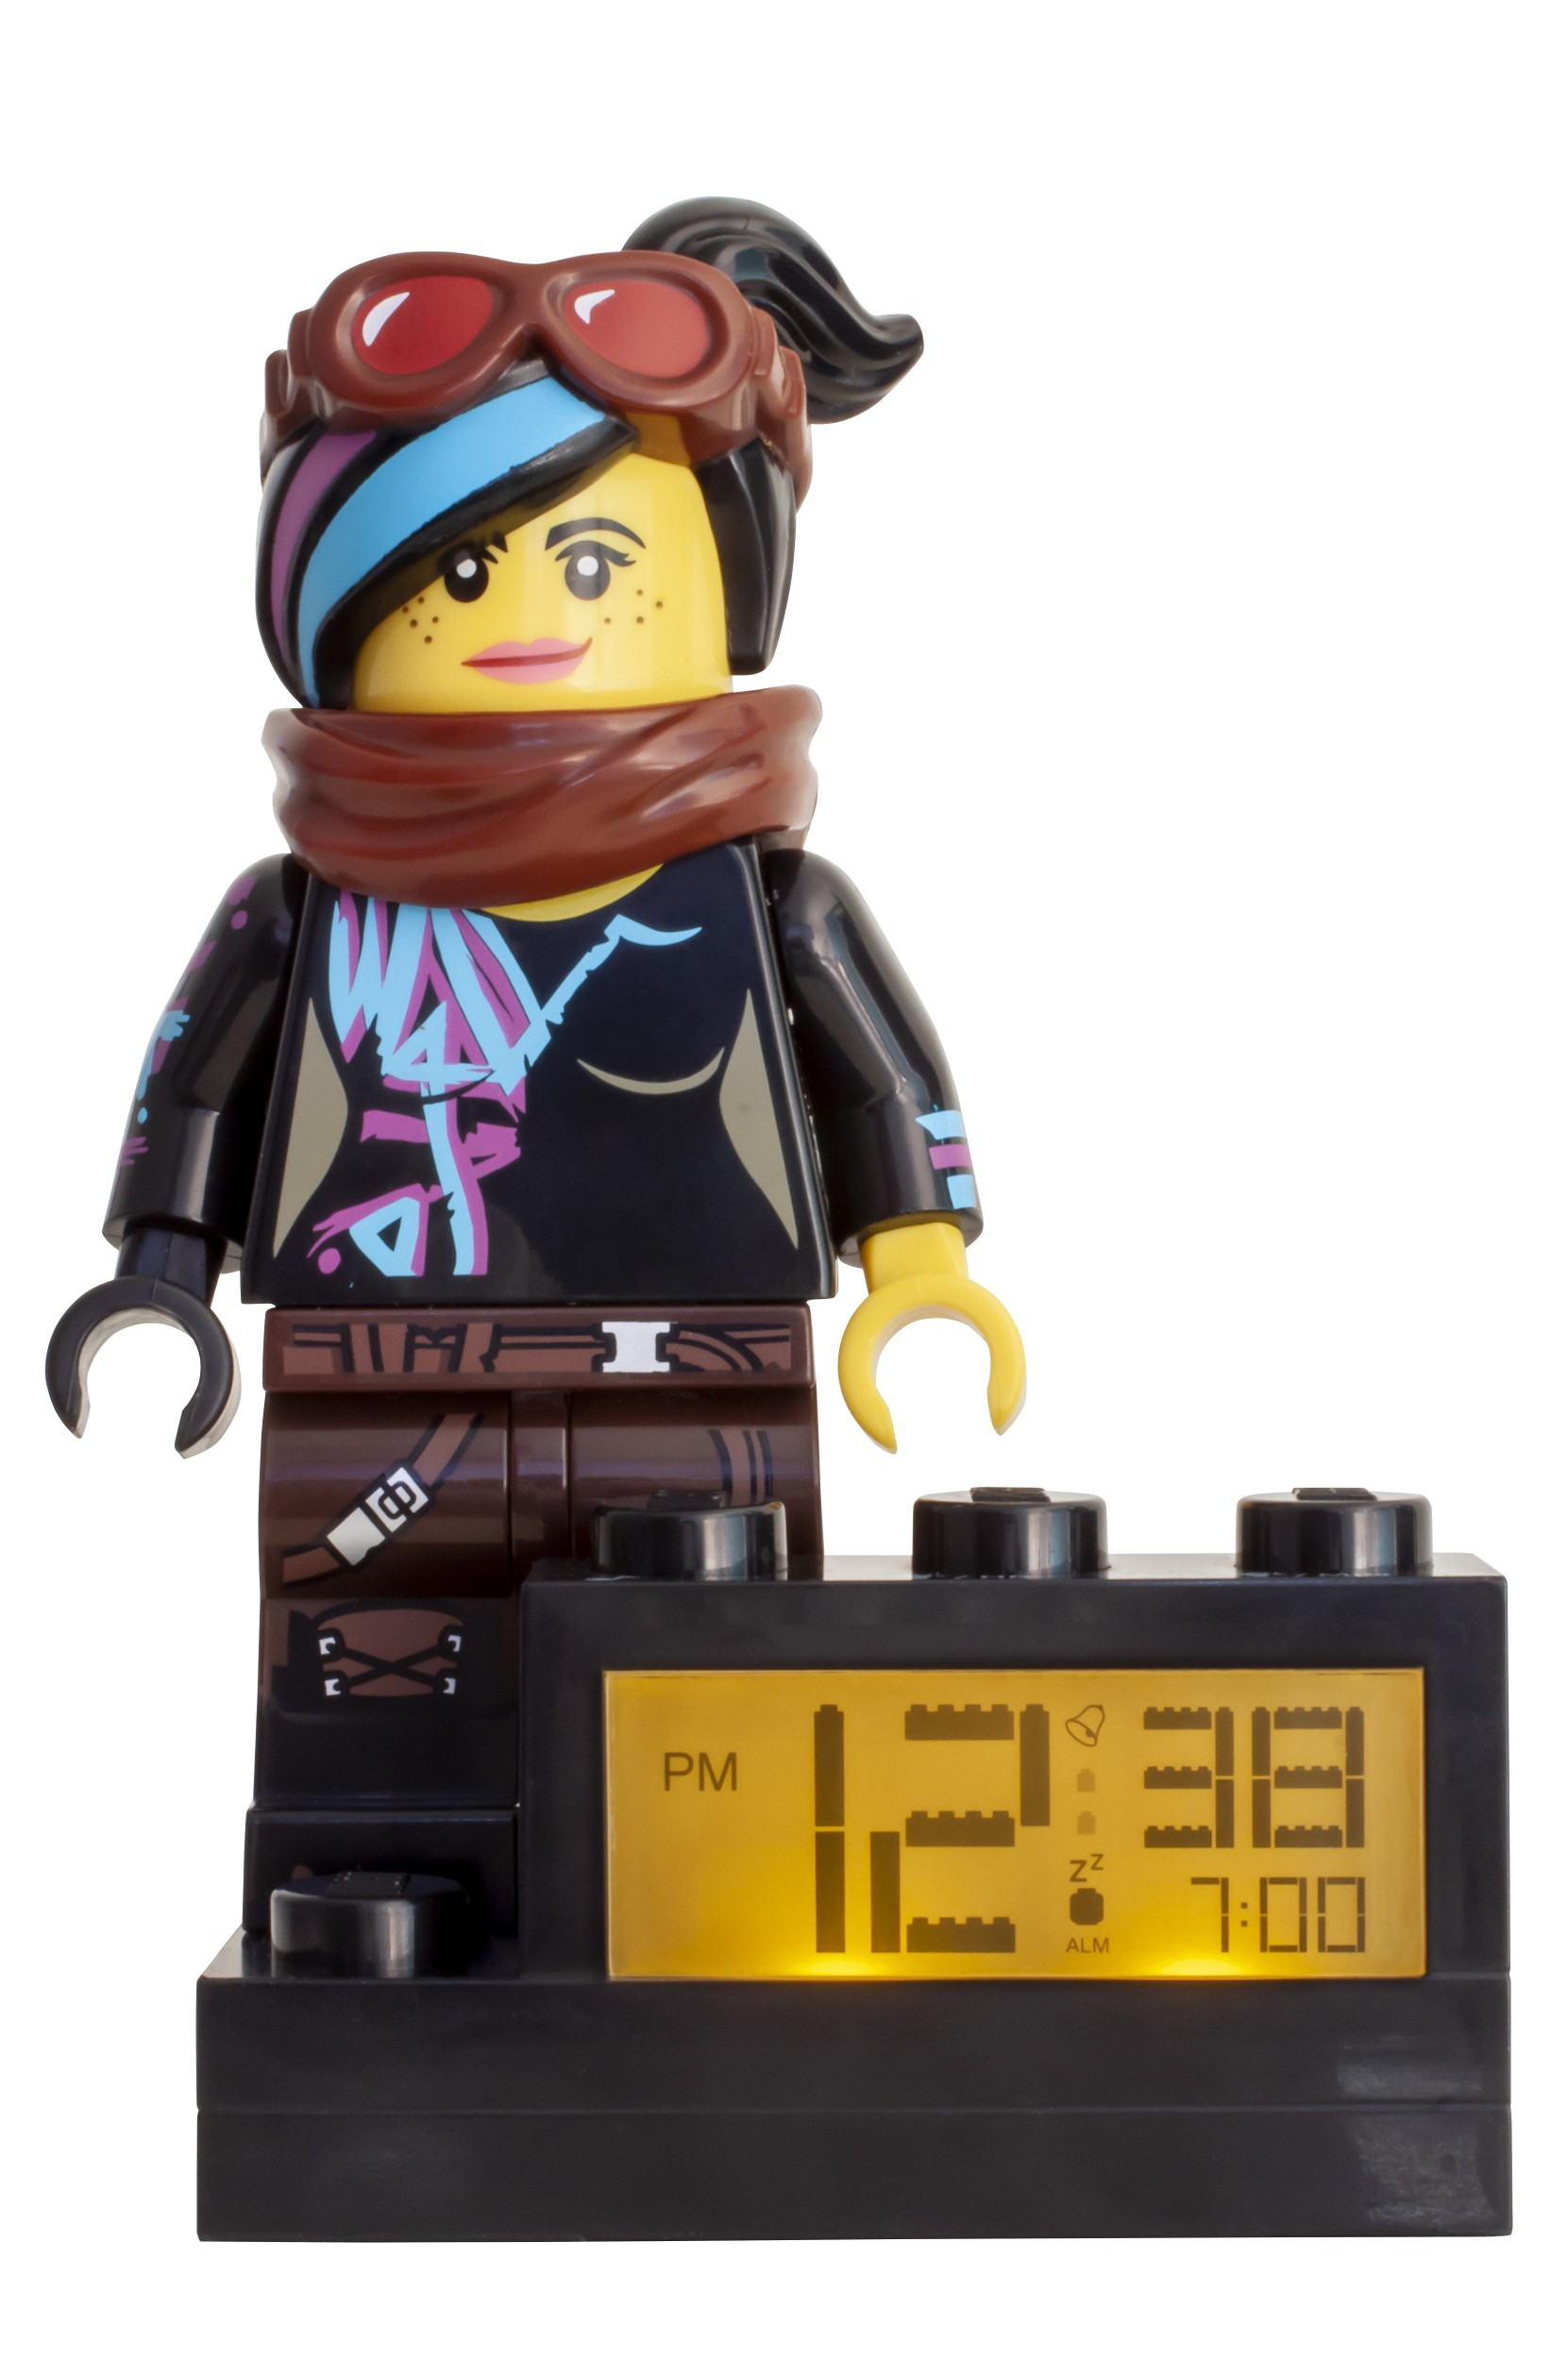 The Lego Movie 2 Wyldstyle Alarm Clock 5005699 The Lego Movie 2 Buy Online At The Official Lego Shop Lu